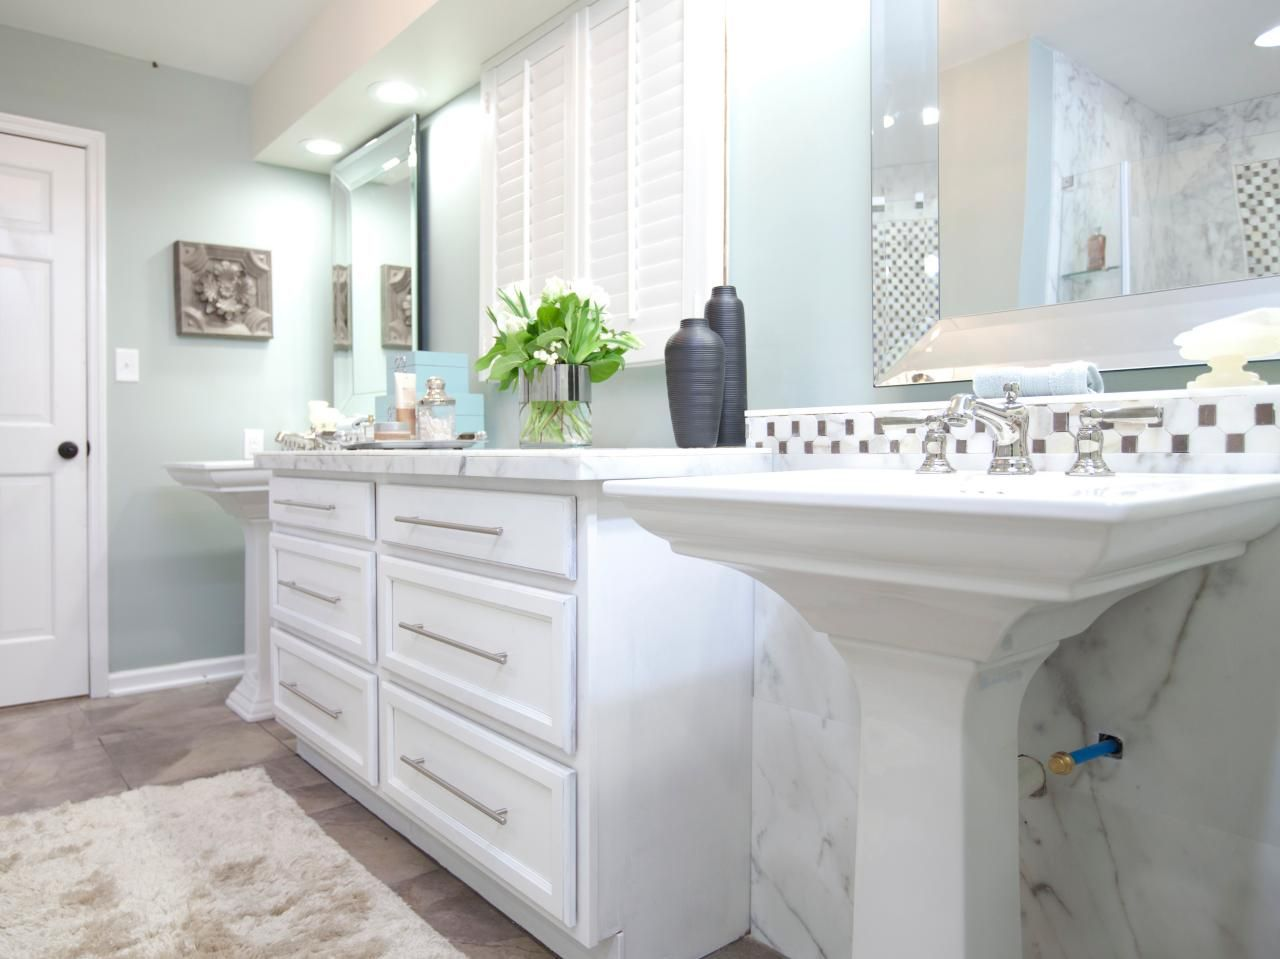 This Contemporary Bathroom Features Subtle Mint Green Walls Paired With White Cabinetry And A Carrara